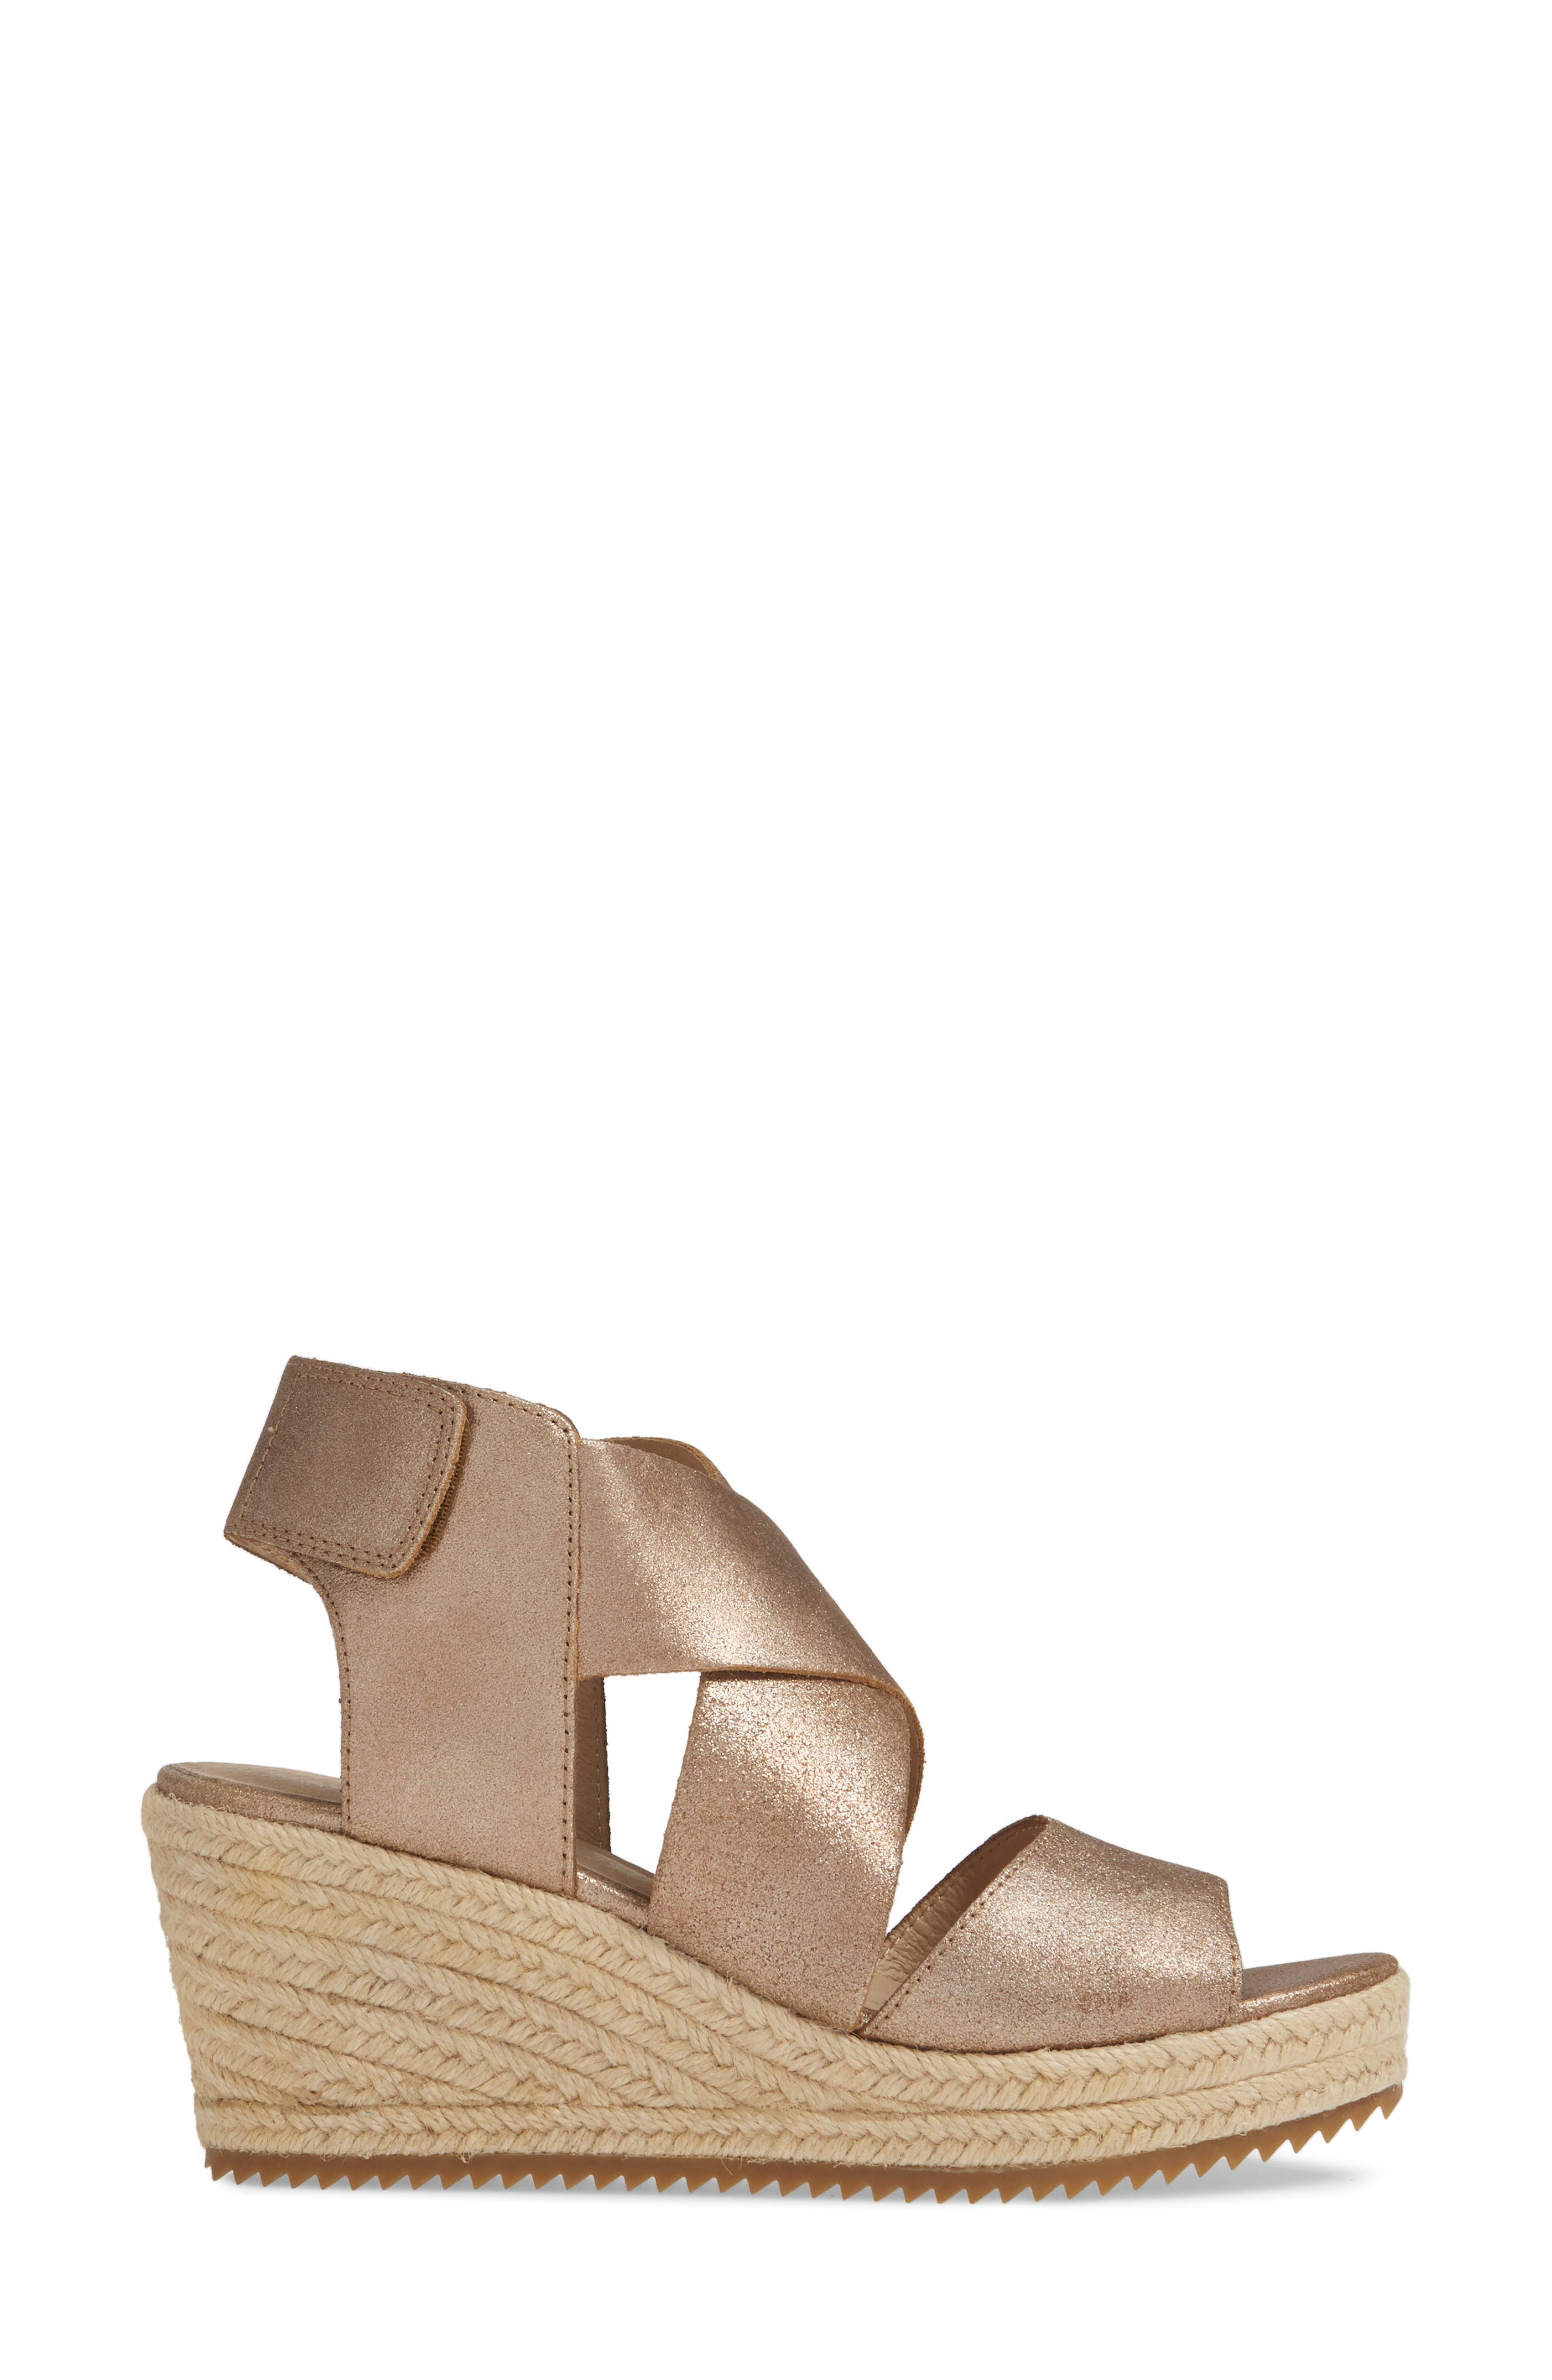 EILEEN FISHER, 'Willow' Espadrille Wedge Sandal, Alternate thumbnail 3, color, BRONZE/ BRONZE LEATHER